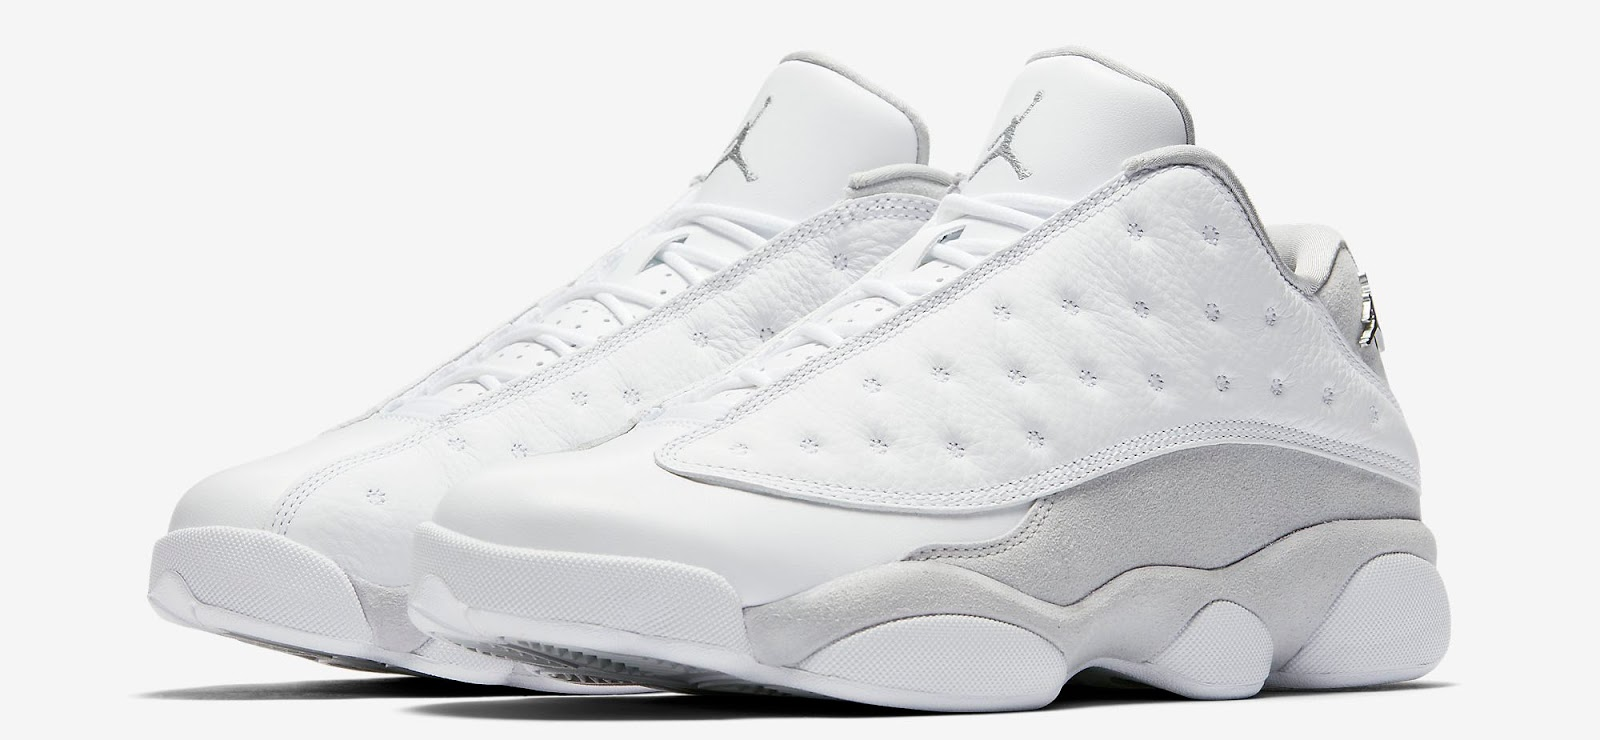 size 40 2db22 bdff2 The latest colorway of the Air Jordan 13 Retro Low hits stores this weekend.